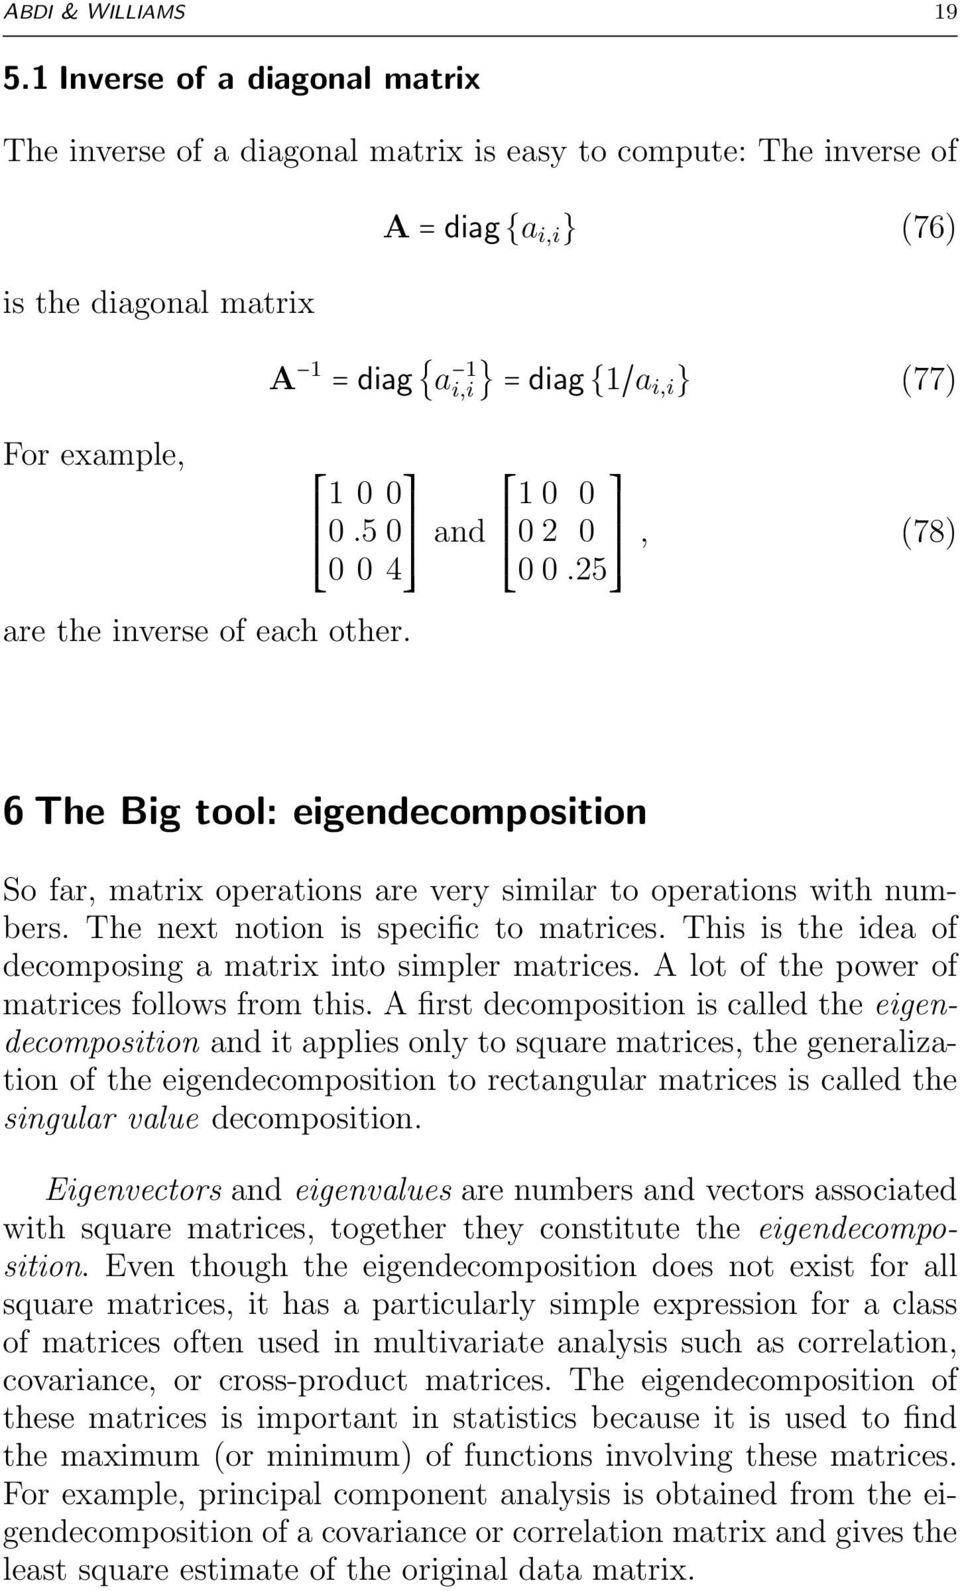 5 0 0 0 4 are the inverse of each other. and 0 0 0 0 0 0.5, (78) 6 The Big tool: eigendecomposition So far, matrix operations are very similar to operations with numbers.